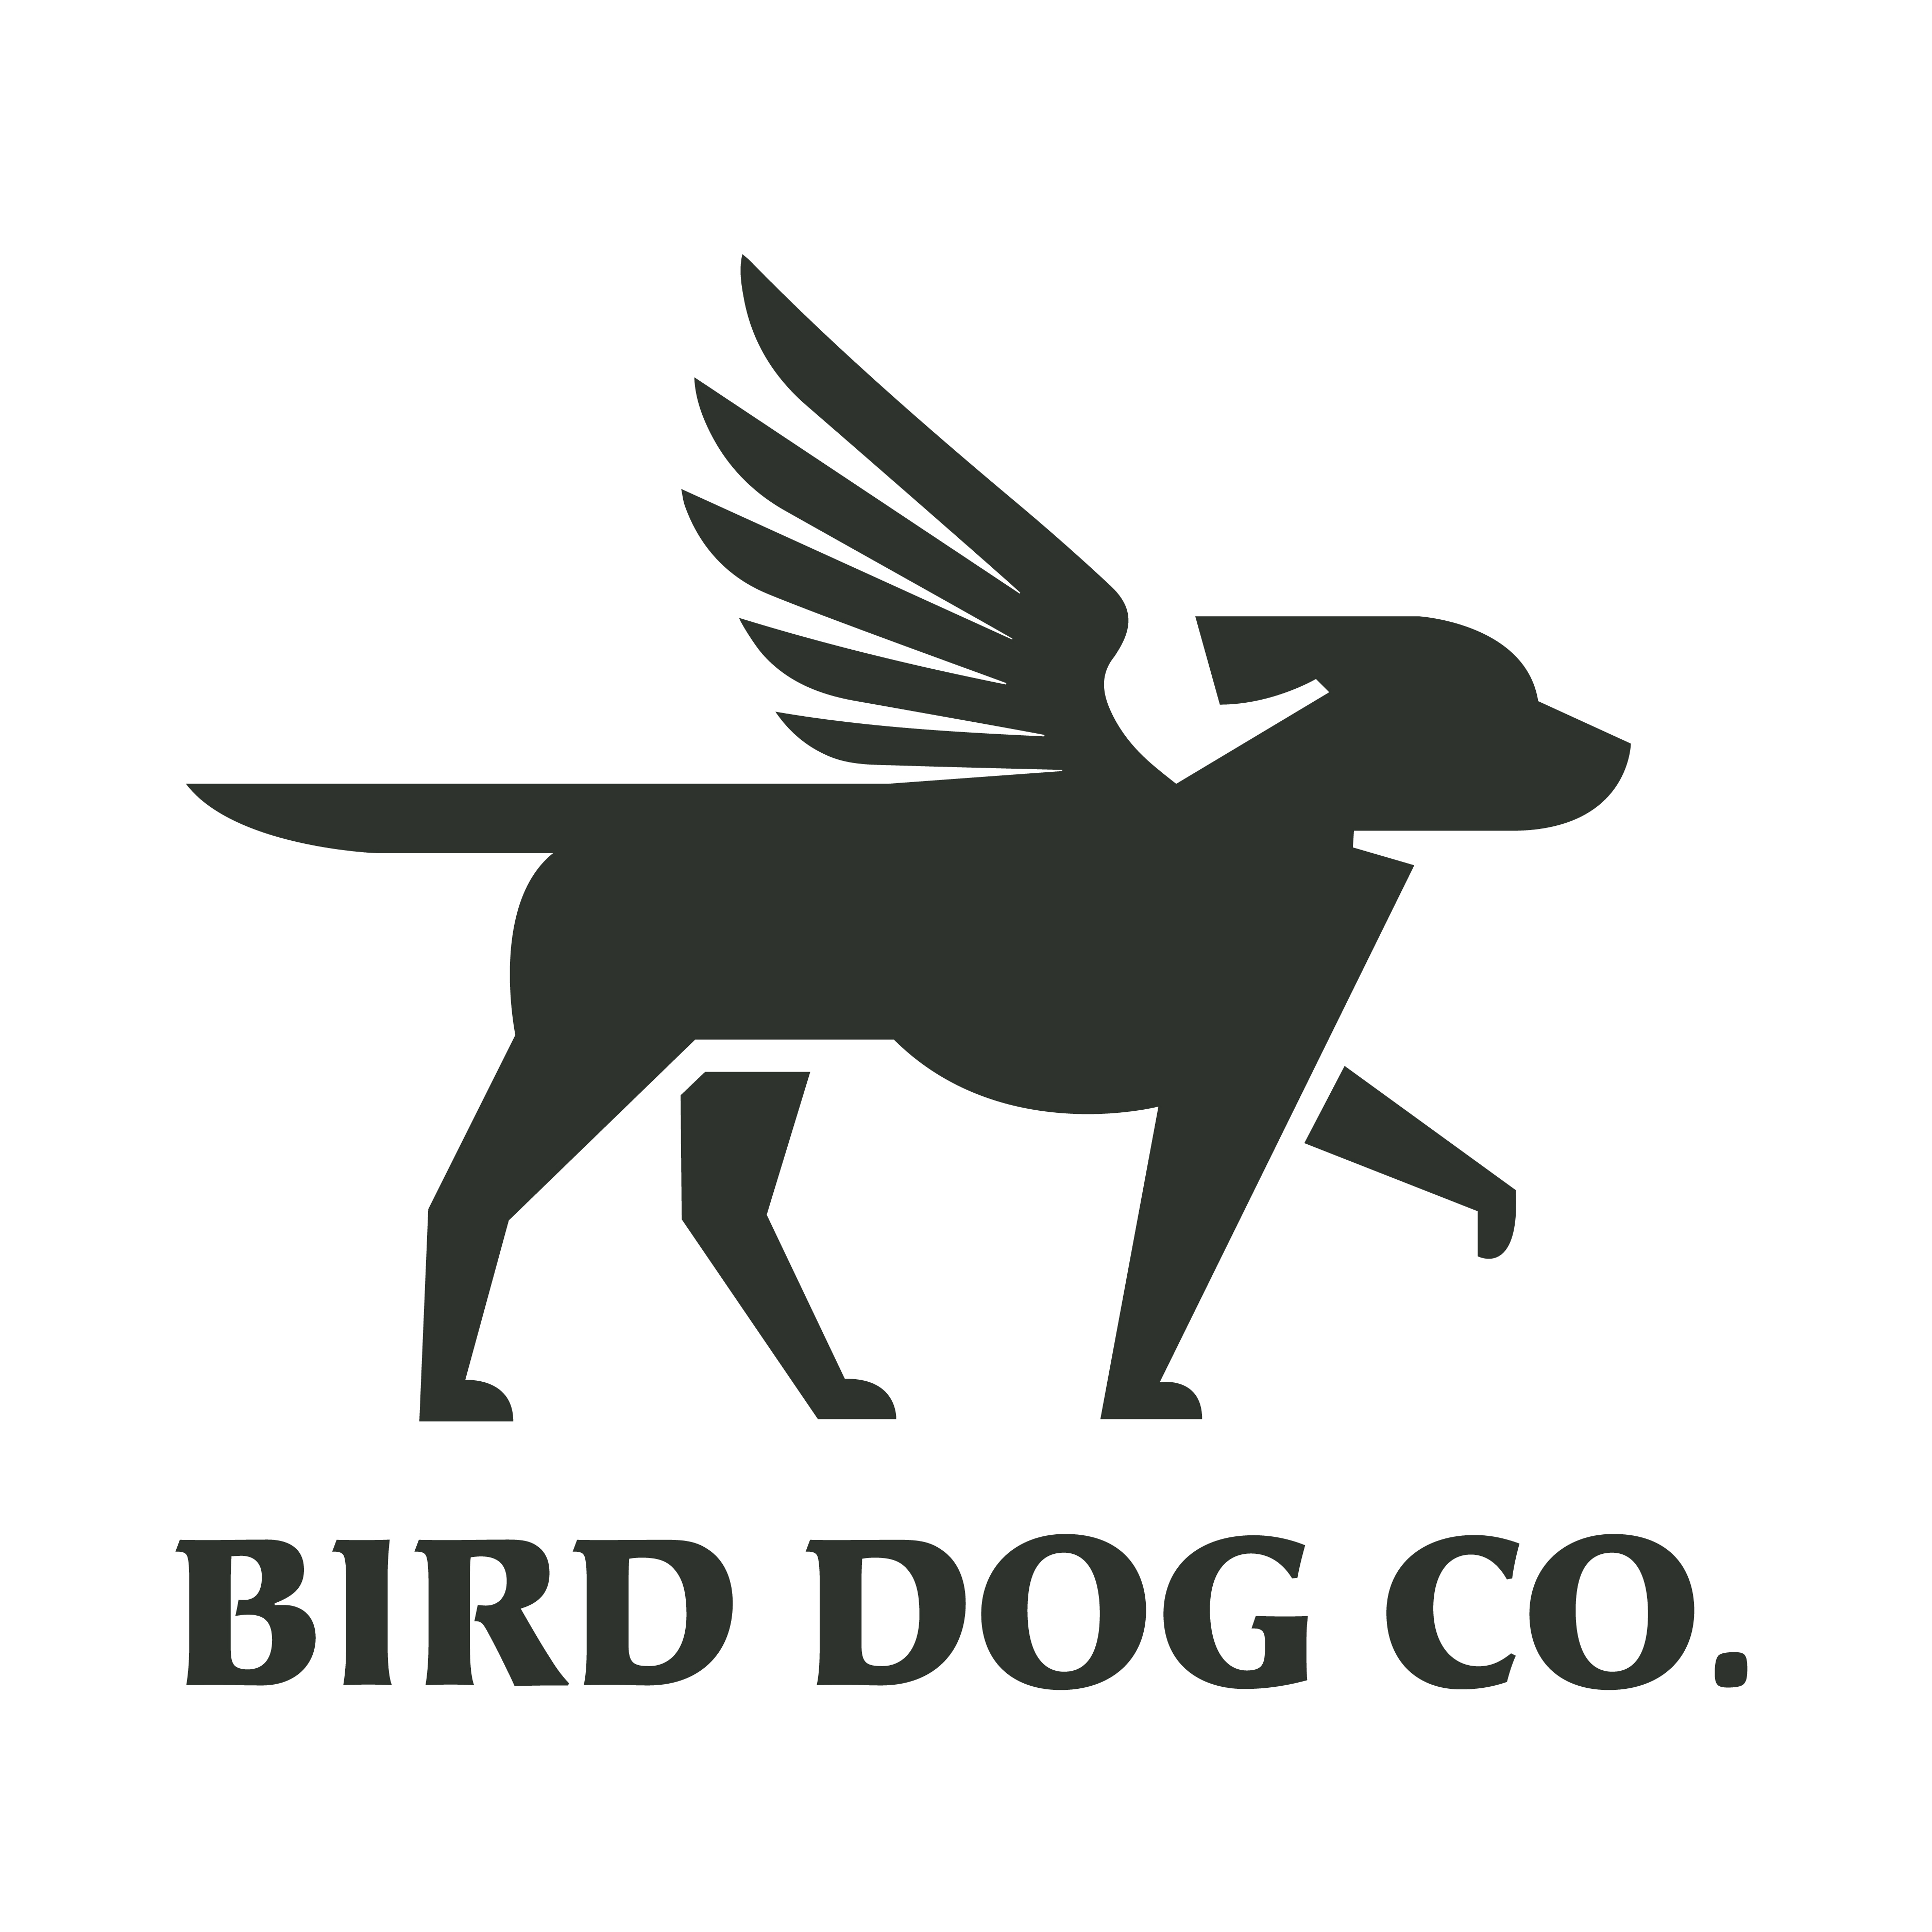 CaribouCreative_BirdDogCo-01